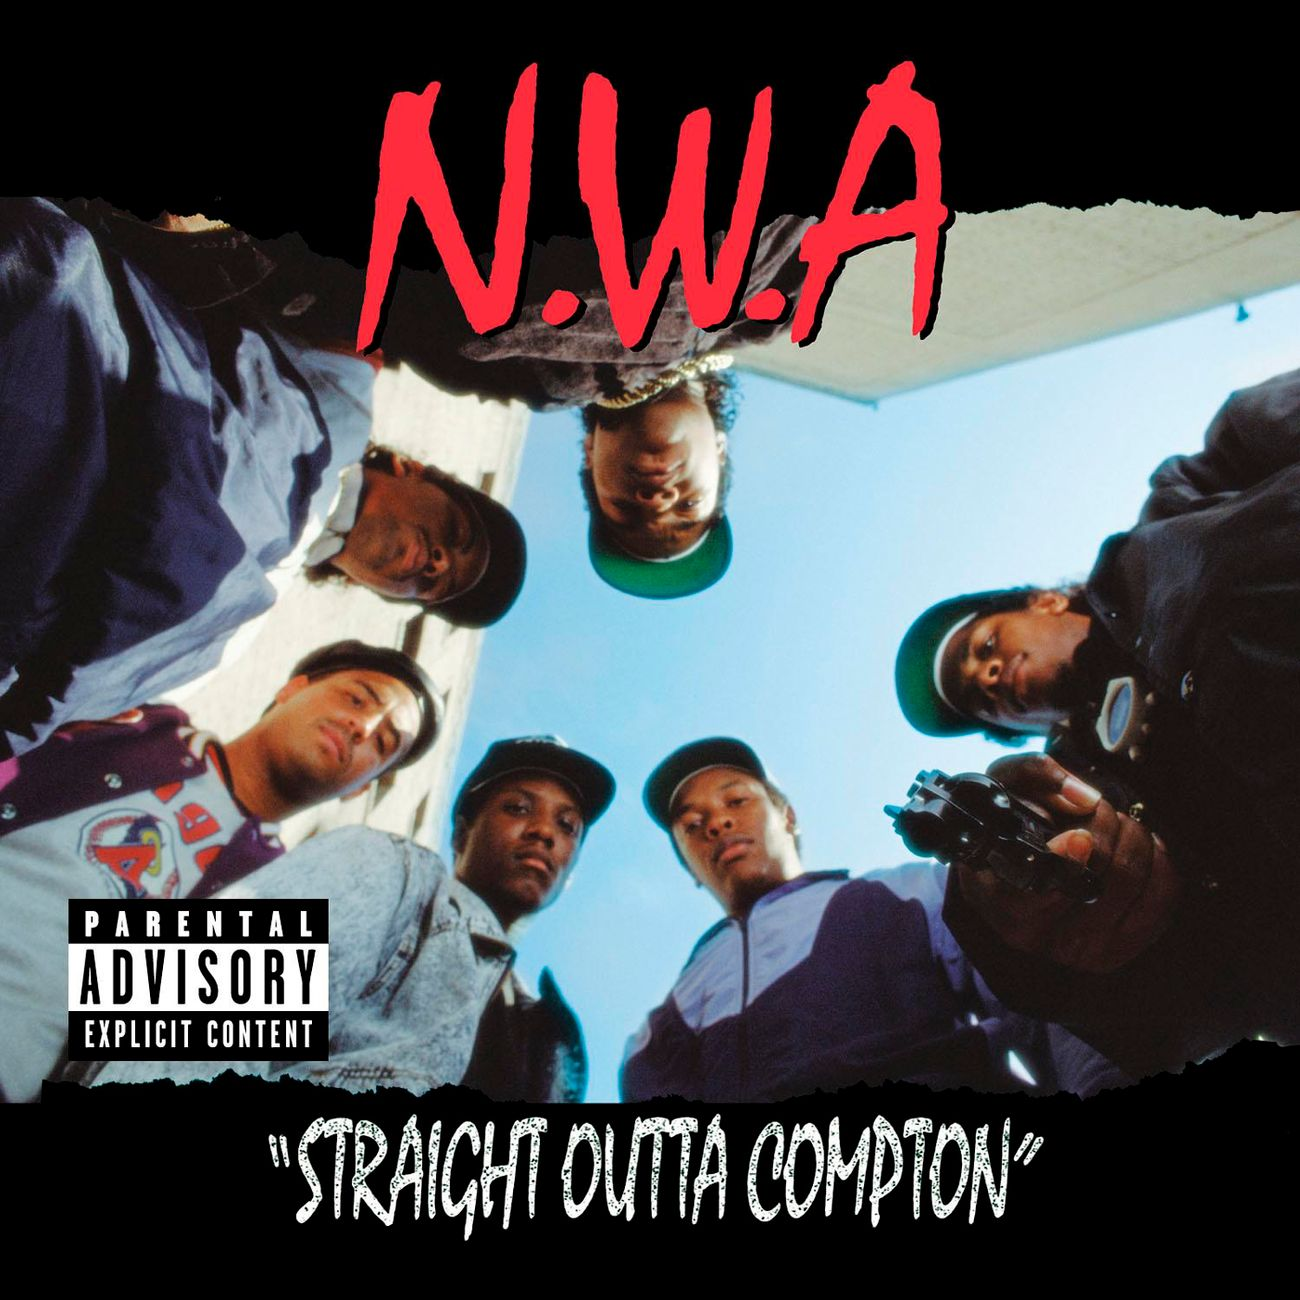 Images For Nwa Wallpaper Iphone 1300x1300